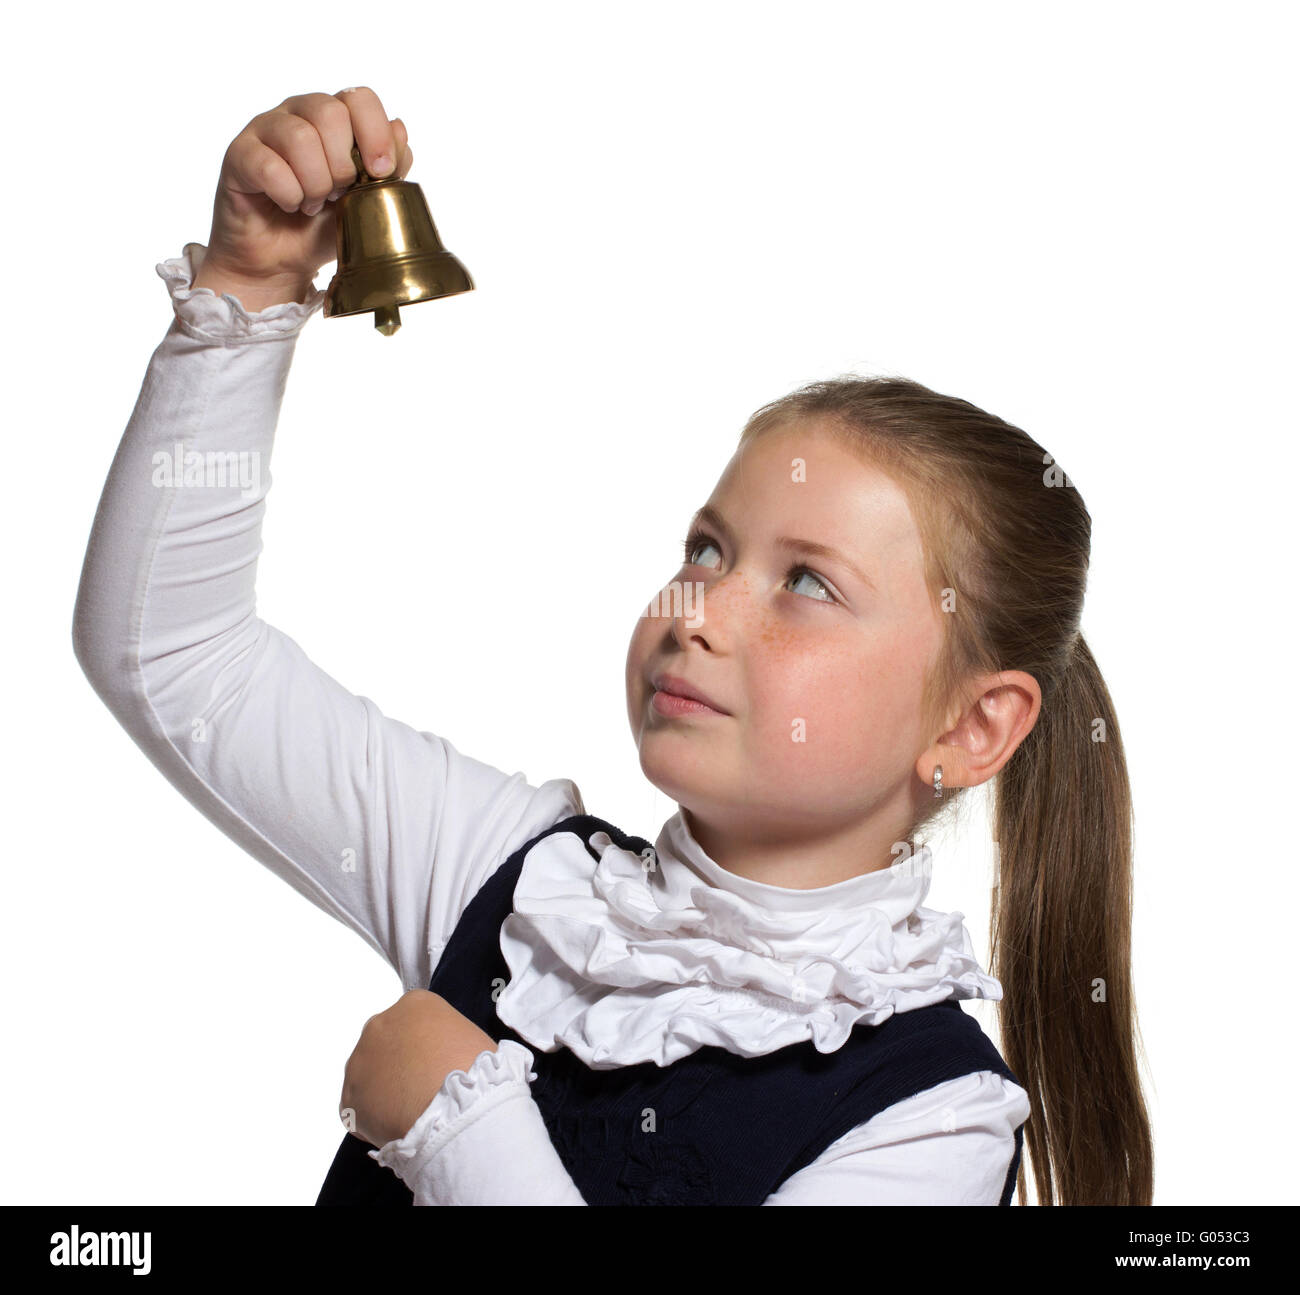 Young school girl looking to golden bell on white background - Stock Image